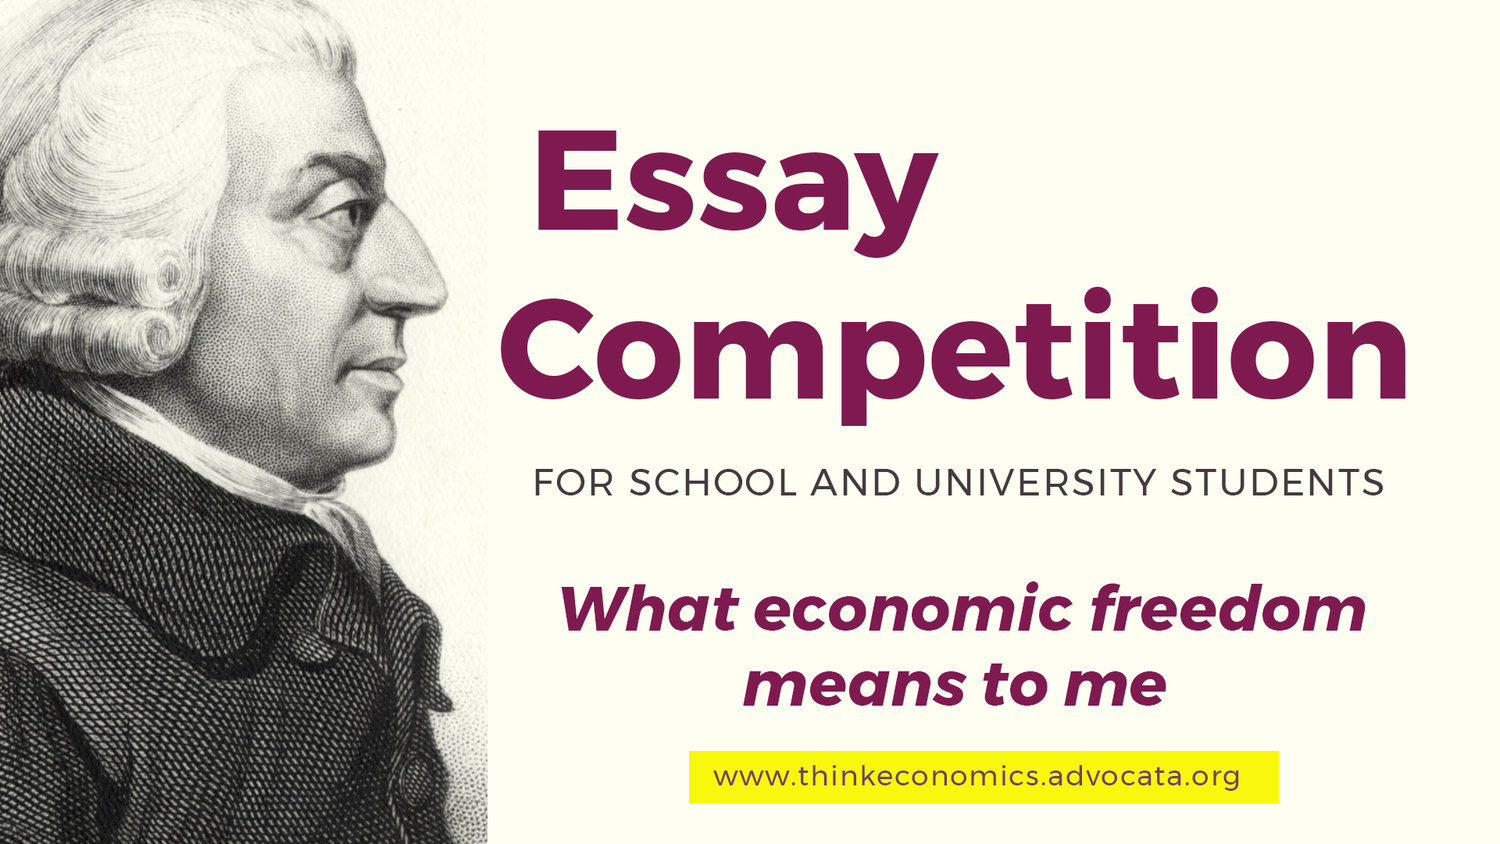 think economics launches essay competition on economic think economics launches essay competition on economic dom